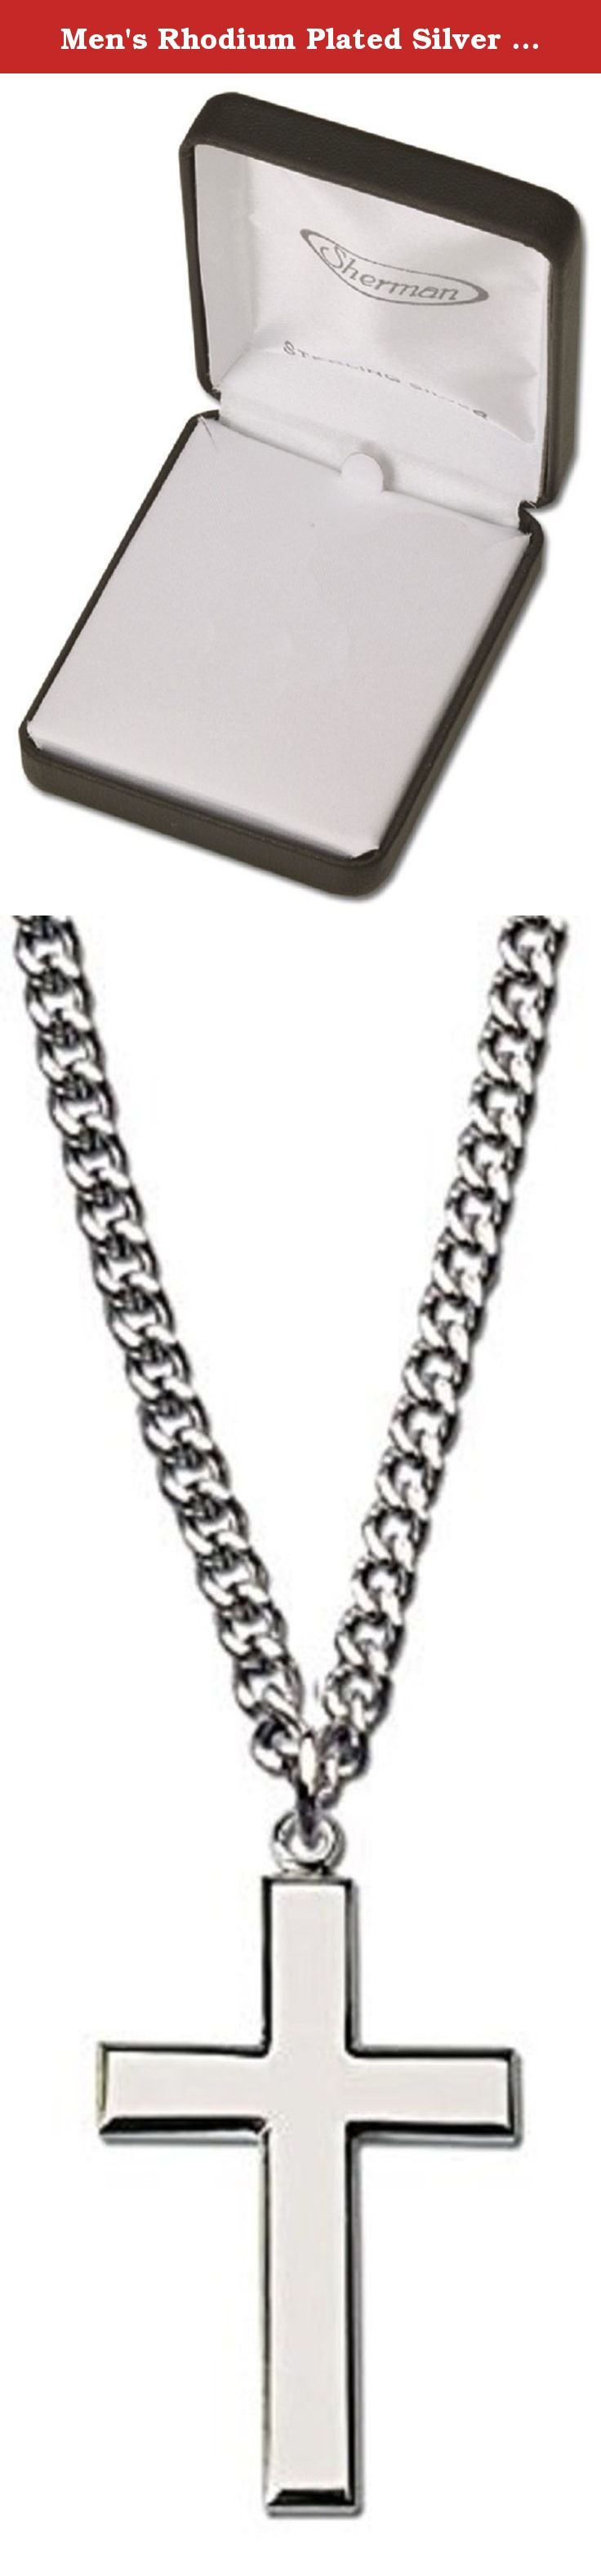 "Men's Rhodium Plated Silver Cross Necklace with 24"" Silver Chain in Leather-ette Gift Box. Men's polished rhodium plated silver Cross necklace. Measures 1"" Long (Vertical, up & down) x 5/8"" Wide (Horizontal, side to side) x 1/8"" Thick (This is an approximate size, they may vary just slightly). The amazing Cross is hung with a 24"" medium weight stainless steel chain (Silver color) that has no clasp. The necklace fits over your head. This necklace is presented in deluxe leather-ette gift…"